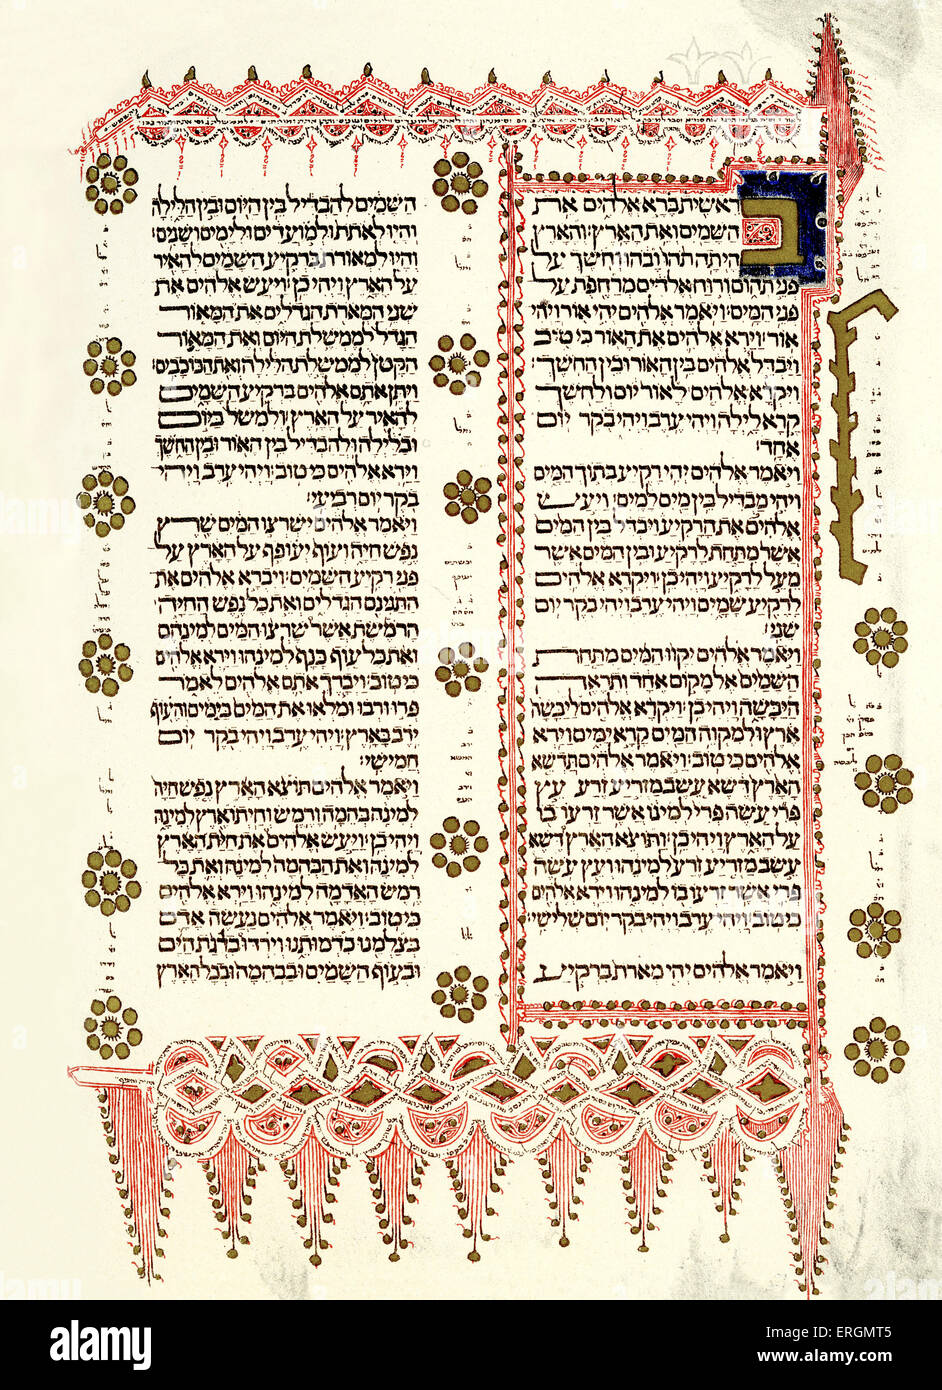 Page from illuminated Hebrew bible. Written in Spain, 1476, 922 pages, often refered to as the Kennicott Bible. - Stock Image